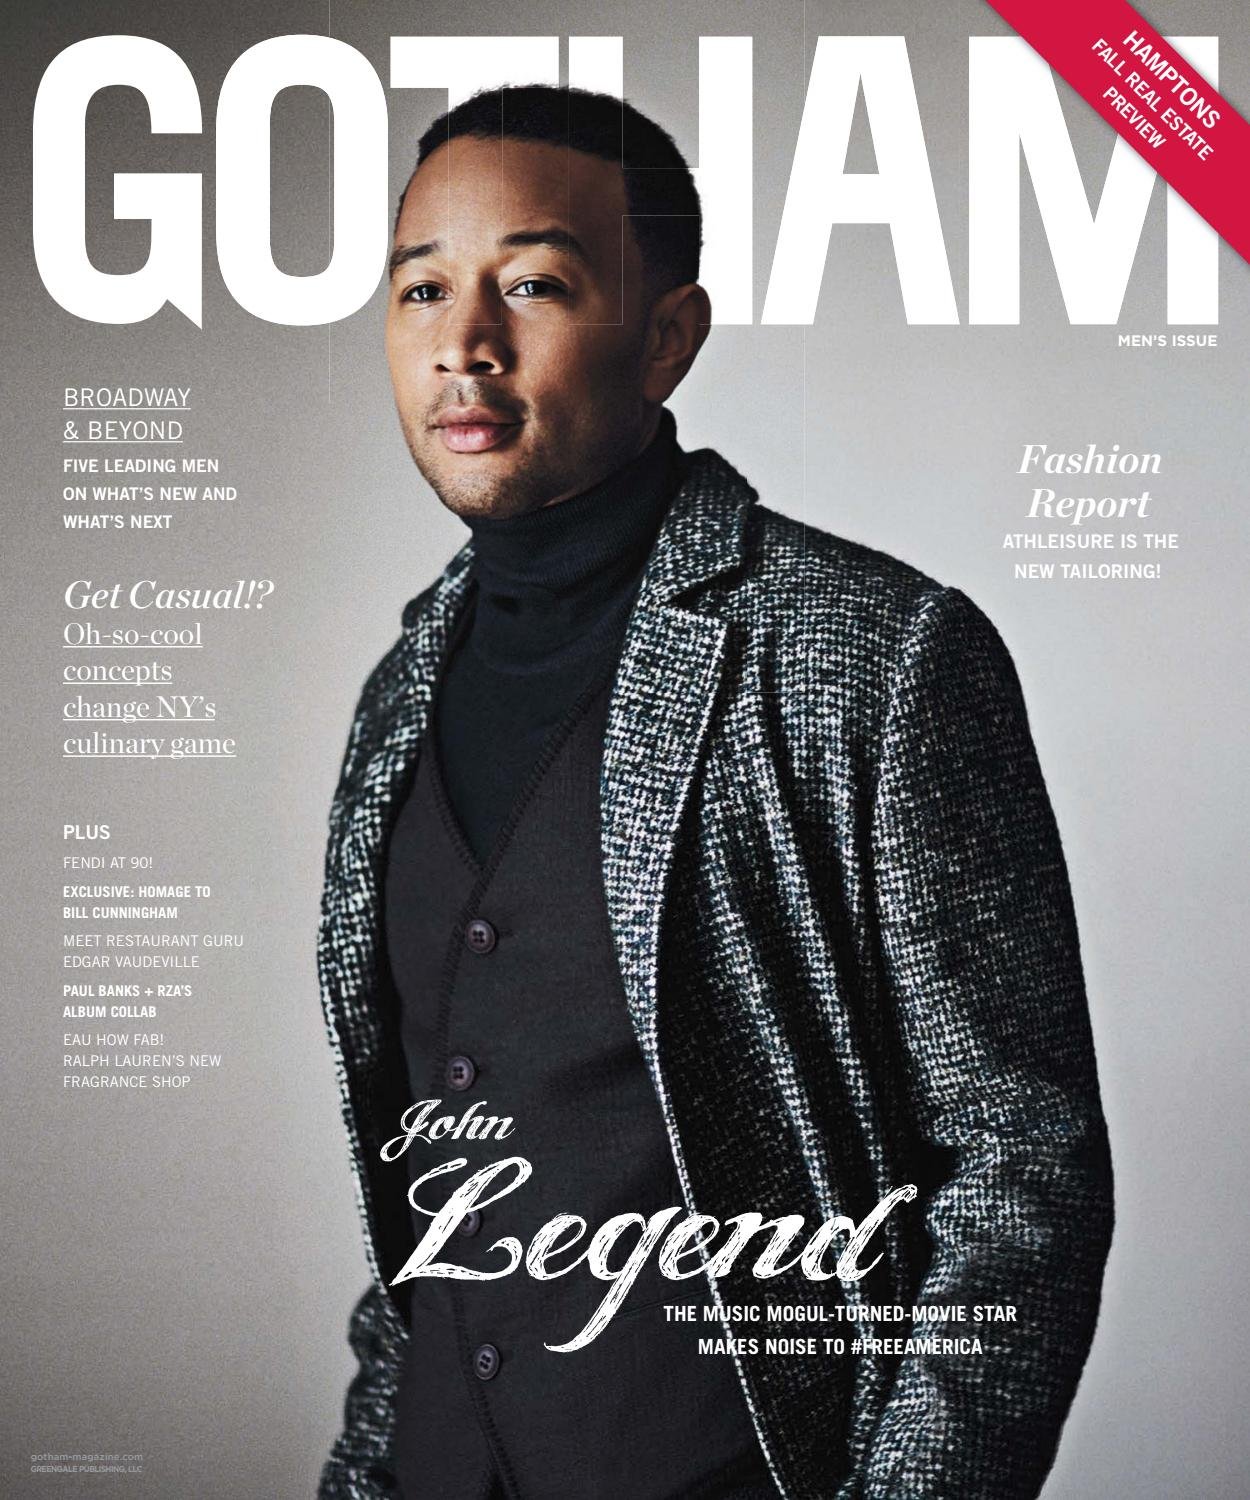 Gotham 2016 Issue 5 Late Fall John Legend By Modern Luxury Polo Milano Central Park Ny Hardcase Travel Luggage Putih Issuu